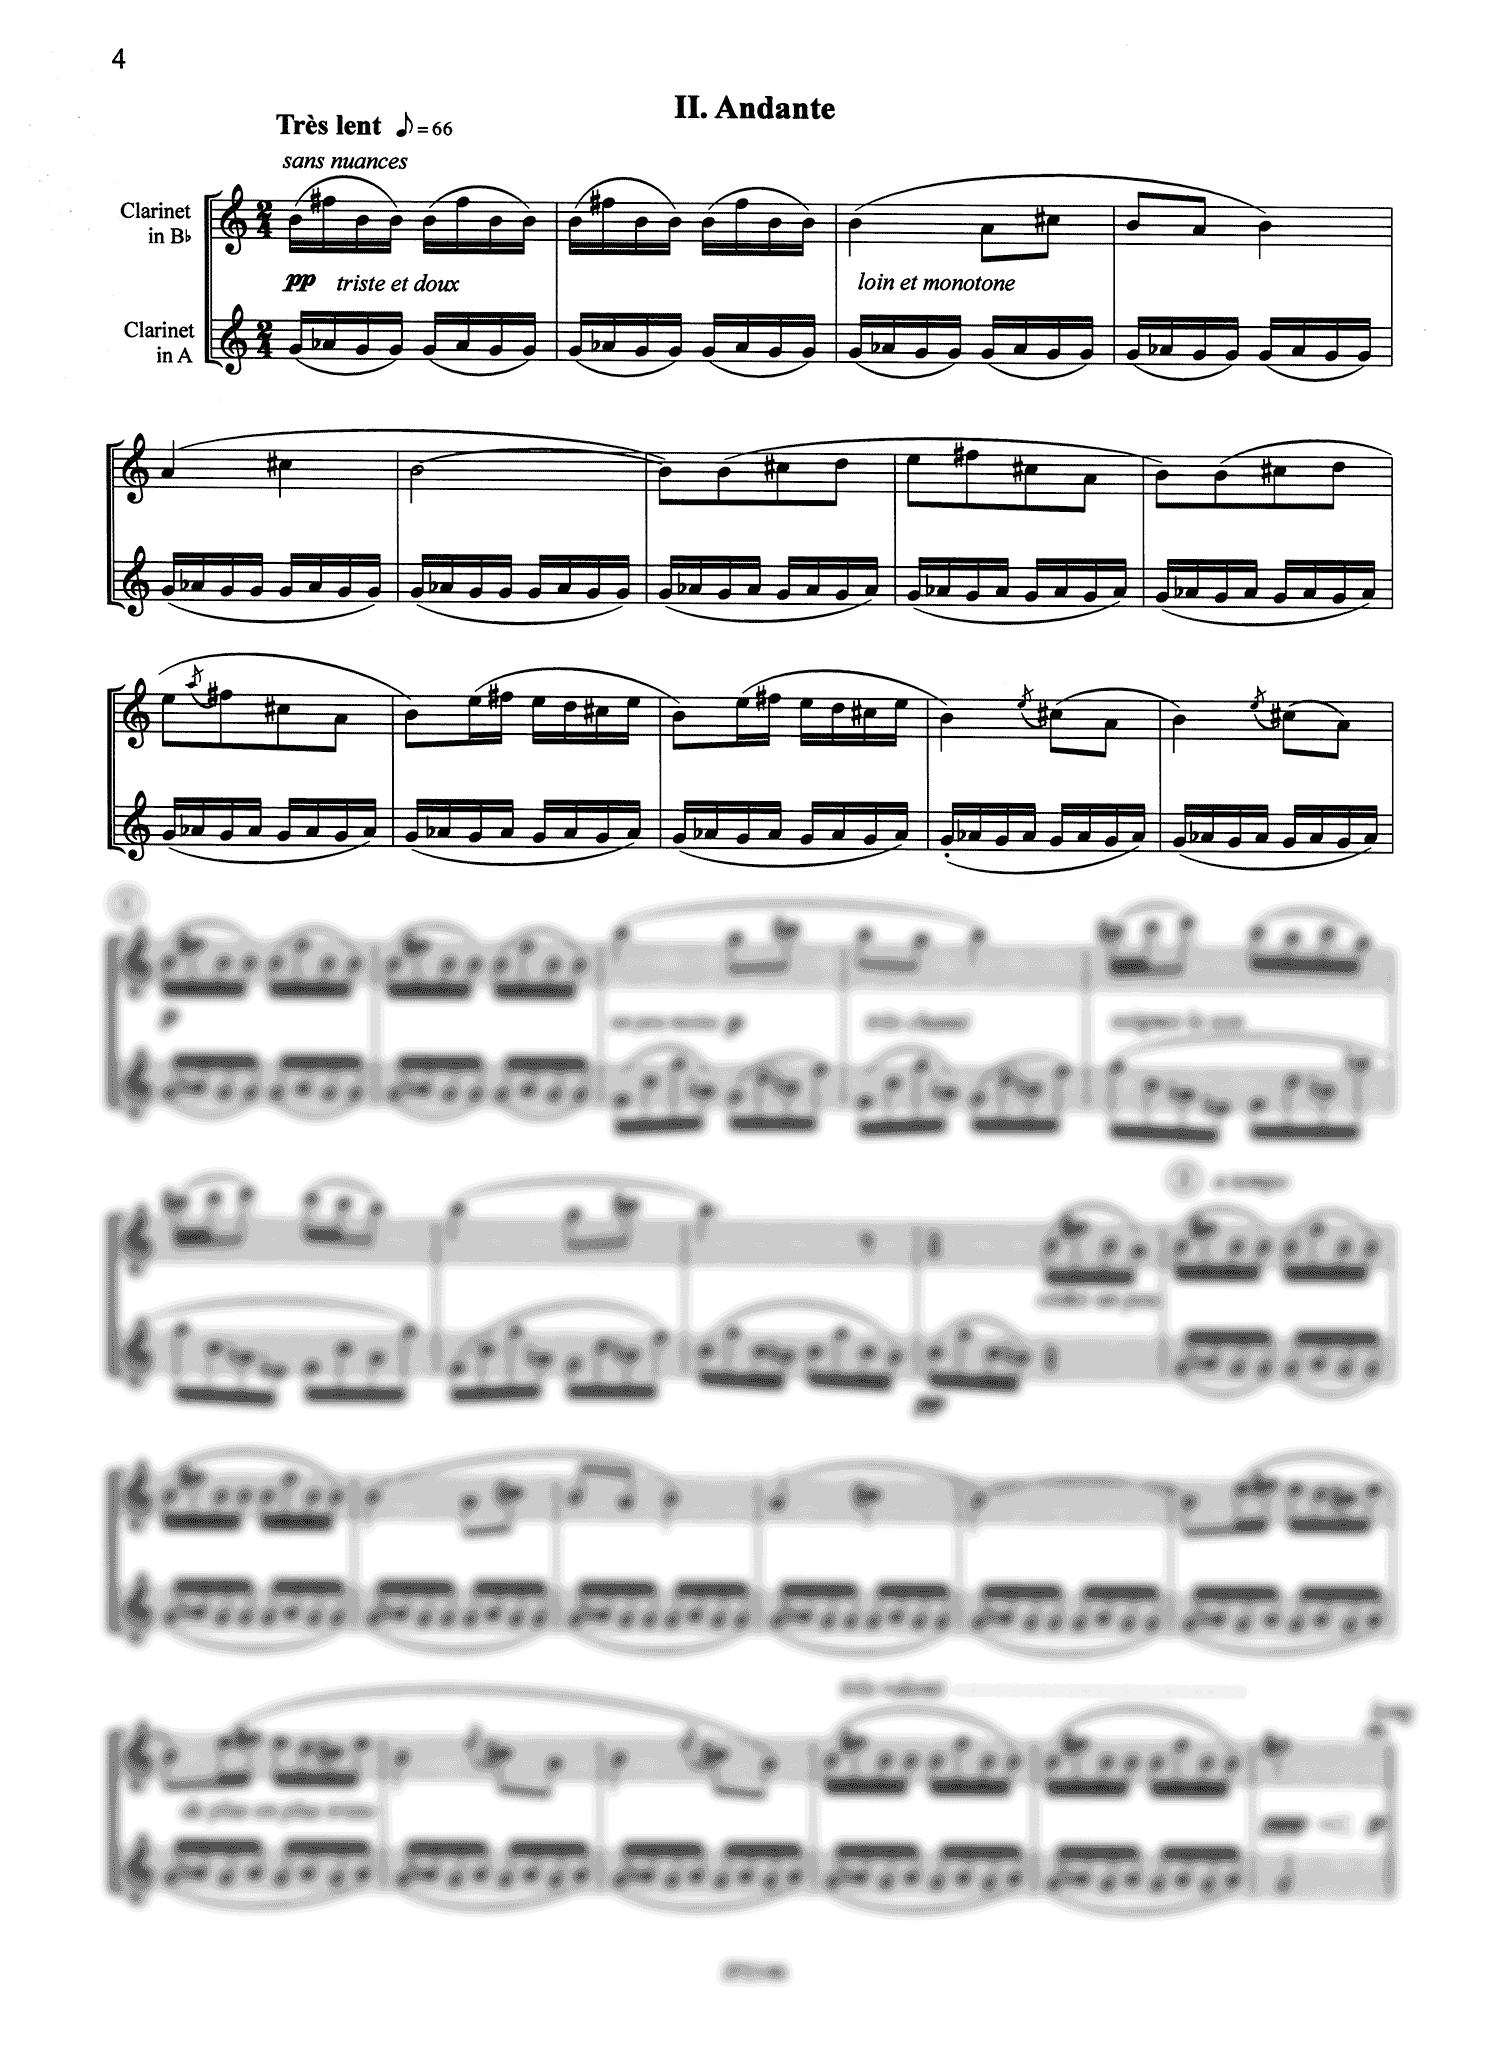 Poulenc Sonata for Two Clarinets, FP 7 - Movement 2